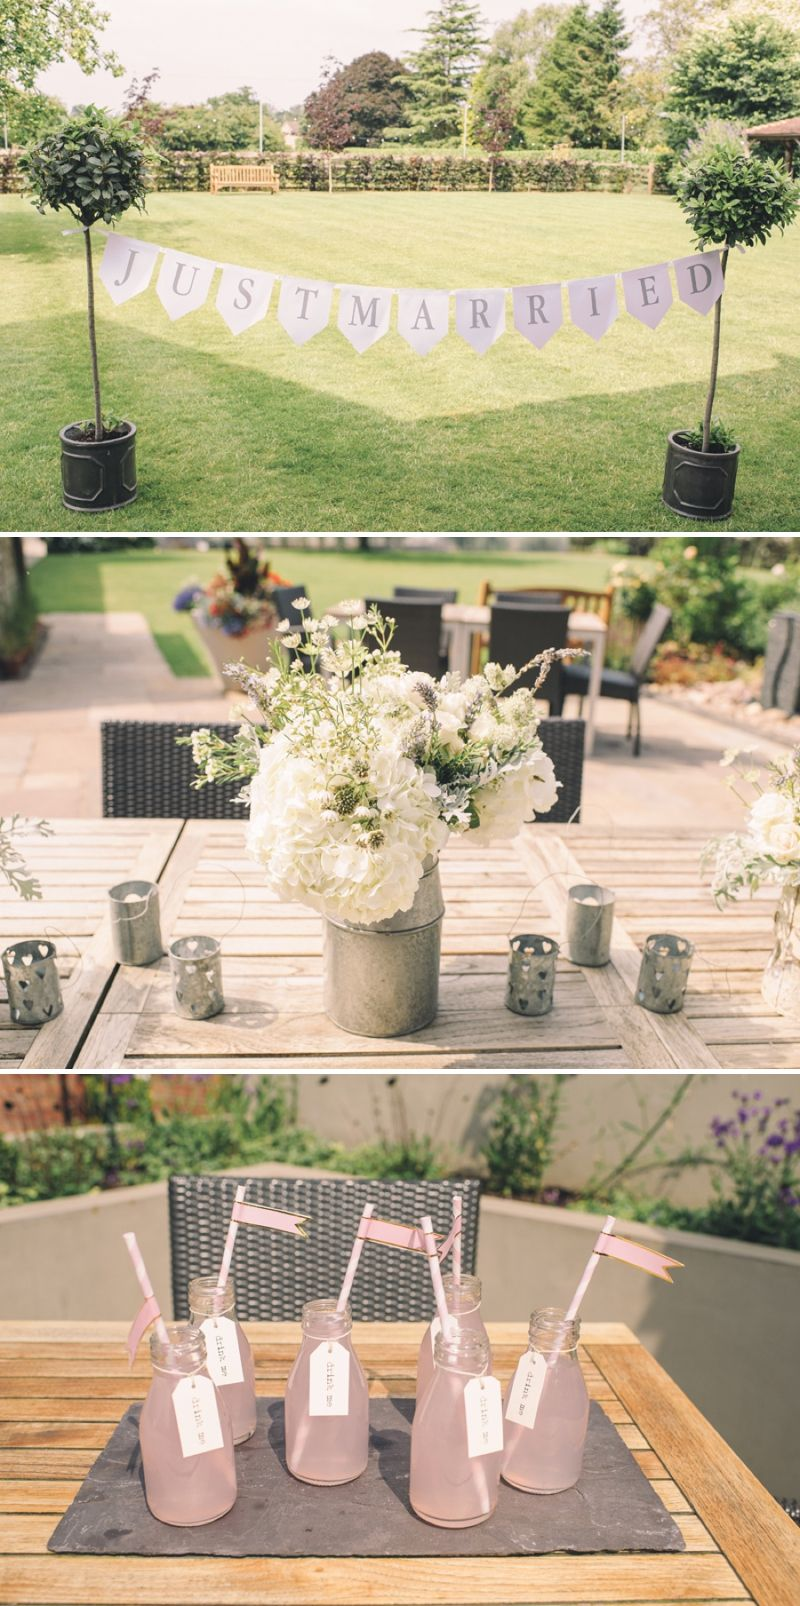 The Wedding Of My Dreams Rustic And Vintage Decorations To Buy